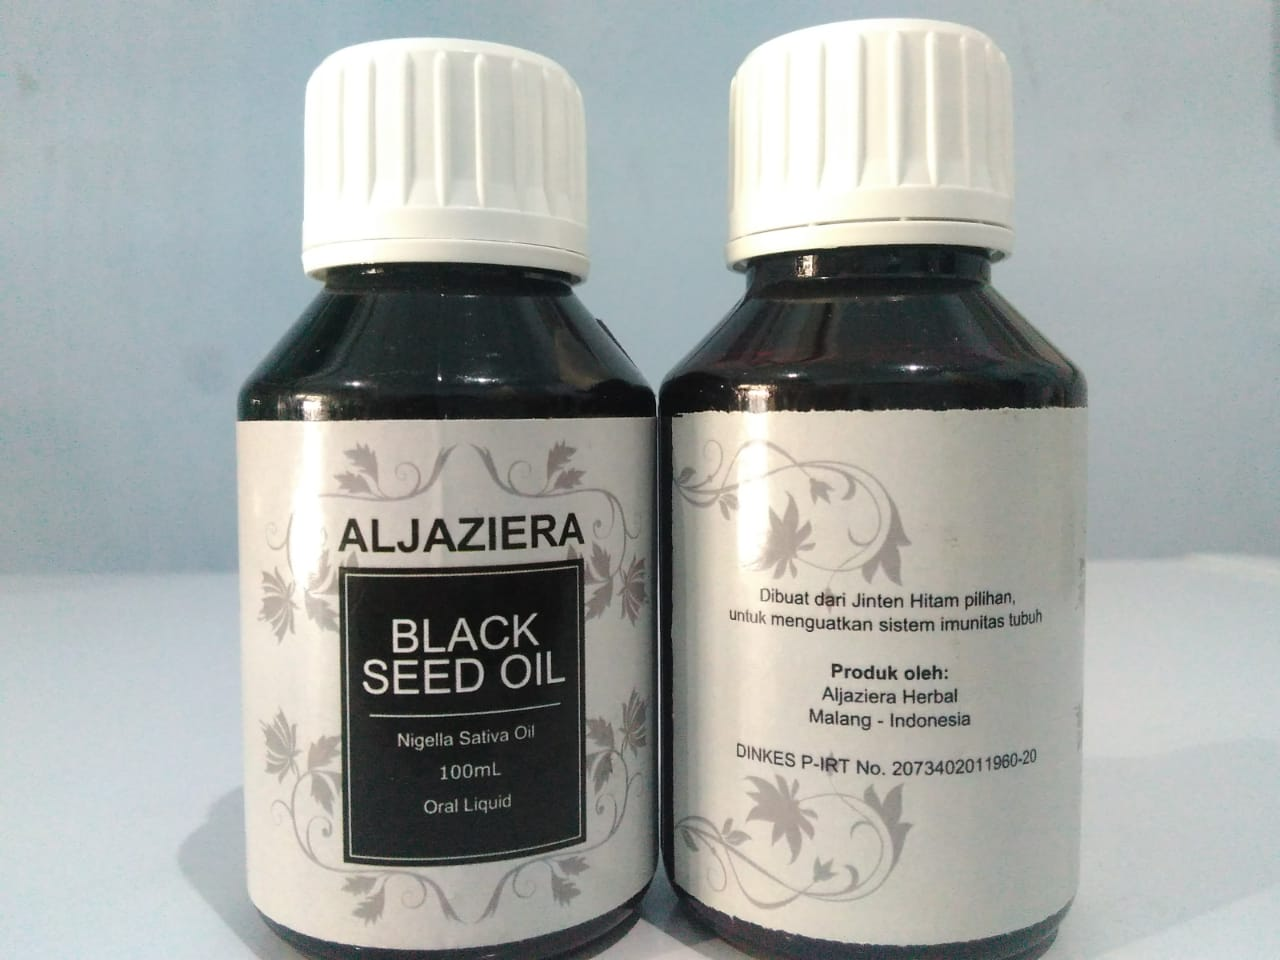 black seed oil aljaziera adalah, black seed oil artinya, black seed oil habbatussauda, black seed oil untuk wajah, black seed oil original, black seed oil extract, black seed oil manfaat,